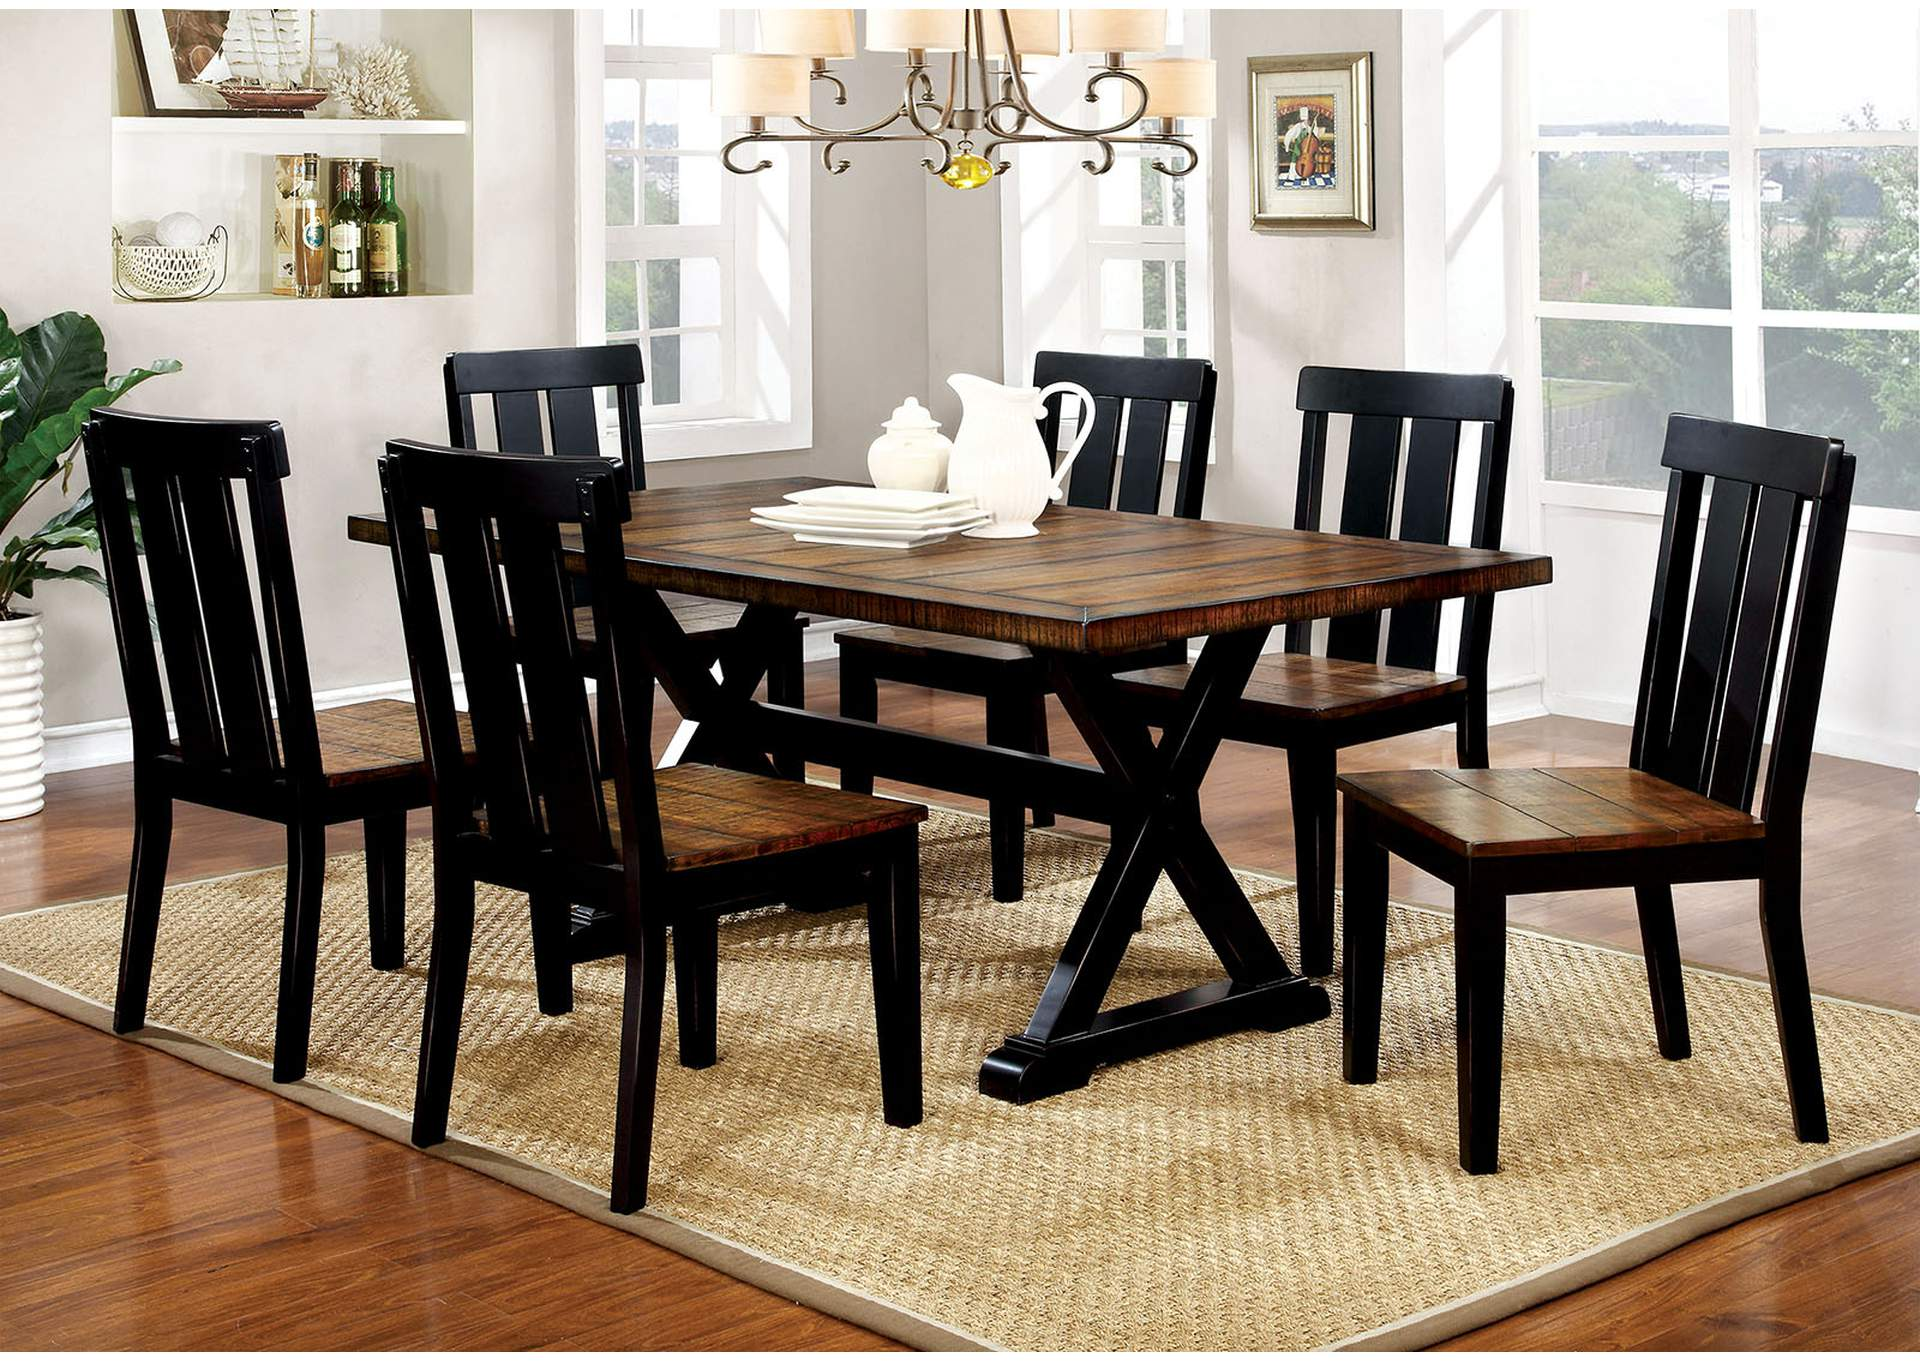 Alana Antique Oak/Black Dining Table,Furniture of America